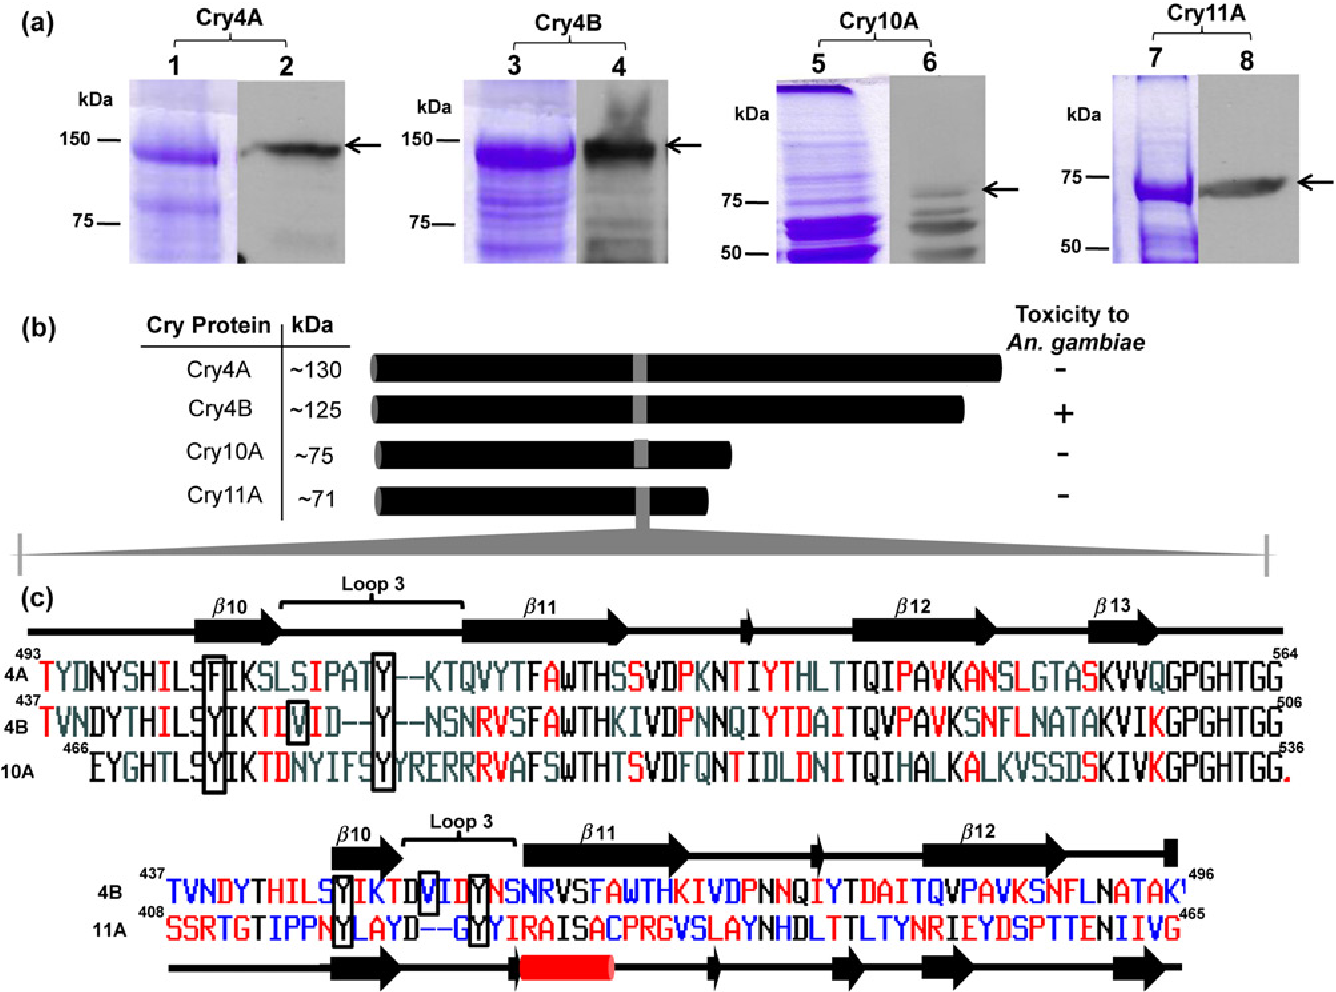 Figure 8 Comparative structural analysis of M1 Cry proteins. (a) SDS-PAGE and immunoblot analysis of recombinant Cry4A, Cry4B, Cry10A and Cry11A proteins. Inclusion bodies were purified from recombinant E. coli and solubilized at pH 12. Soluble fractions were analyzed by 10% SDS-PAGE. Lanes 1, 3, 5 and 7 are Cry4A, Cry4B, Cry10A and Cry11A, respectively. Protein samples from lanes 1, 3, 5 and 7 were transferred to PVDF membrane and Cry proteins were detected using anti-Bti goat-raised antibodies and horseraddish peroxidase conjugated to goat anti-rabbit IgG. Lanes 2, 4, 6 and 8 represent Cry4A, Cry4B, Cry10A and Cry11A, respectively. Molecular weight markers are indicated on the left side of each gel. Arrows point to recombinant Cry proteins. (b) Schema of predicted sizes (kDa) of recombinant Cry4A, Cry4B, Cry10A and Cry11A proteins and their toxicity to An. gambiae larvae. Positive sign indicates LC50 equal to 3.0 103 ng/mL, whereas negative sign indicates LC50 greater than 6.0 105 ng/mL. (c) Multiple sequence alignment and secondary structure prediction showing the putative receptor-binding region in Cry4A (residues 493–564), Cry4B (residues 437–506), Cry10A (residues 466–536) and Cry11A (residues 408–465). The predicted secondary structures, b10, loop-3 and b11–b13 strands of Cry4A, Cry4B and Cry10A are indicated above the sequences. The secondary structures for Cry11A are indicated below the sequence. In the case of Cry4A, Cry4B and Cry10A, amino acids shown in black denote identical residues; those residues in red are common only in two of the Cry proteins, whereas those residues in gray vary among three of the proteins. For Cry4B and Cry11A (second alignment), the residues in black are identical or similar whereas those in blue or red vary in the two proteins. Amino acid residues displayed in the black boxes most likely are crucial for receptor binding. Black arrows and black solid lines highlight predicted b strands and loops, respectively. The red cylinder h